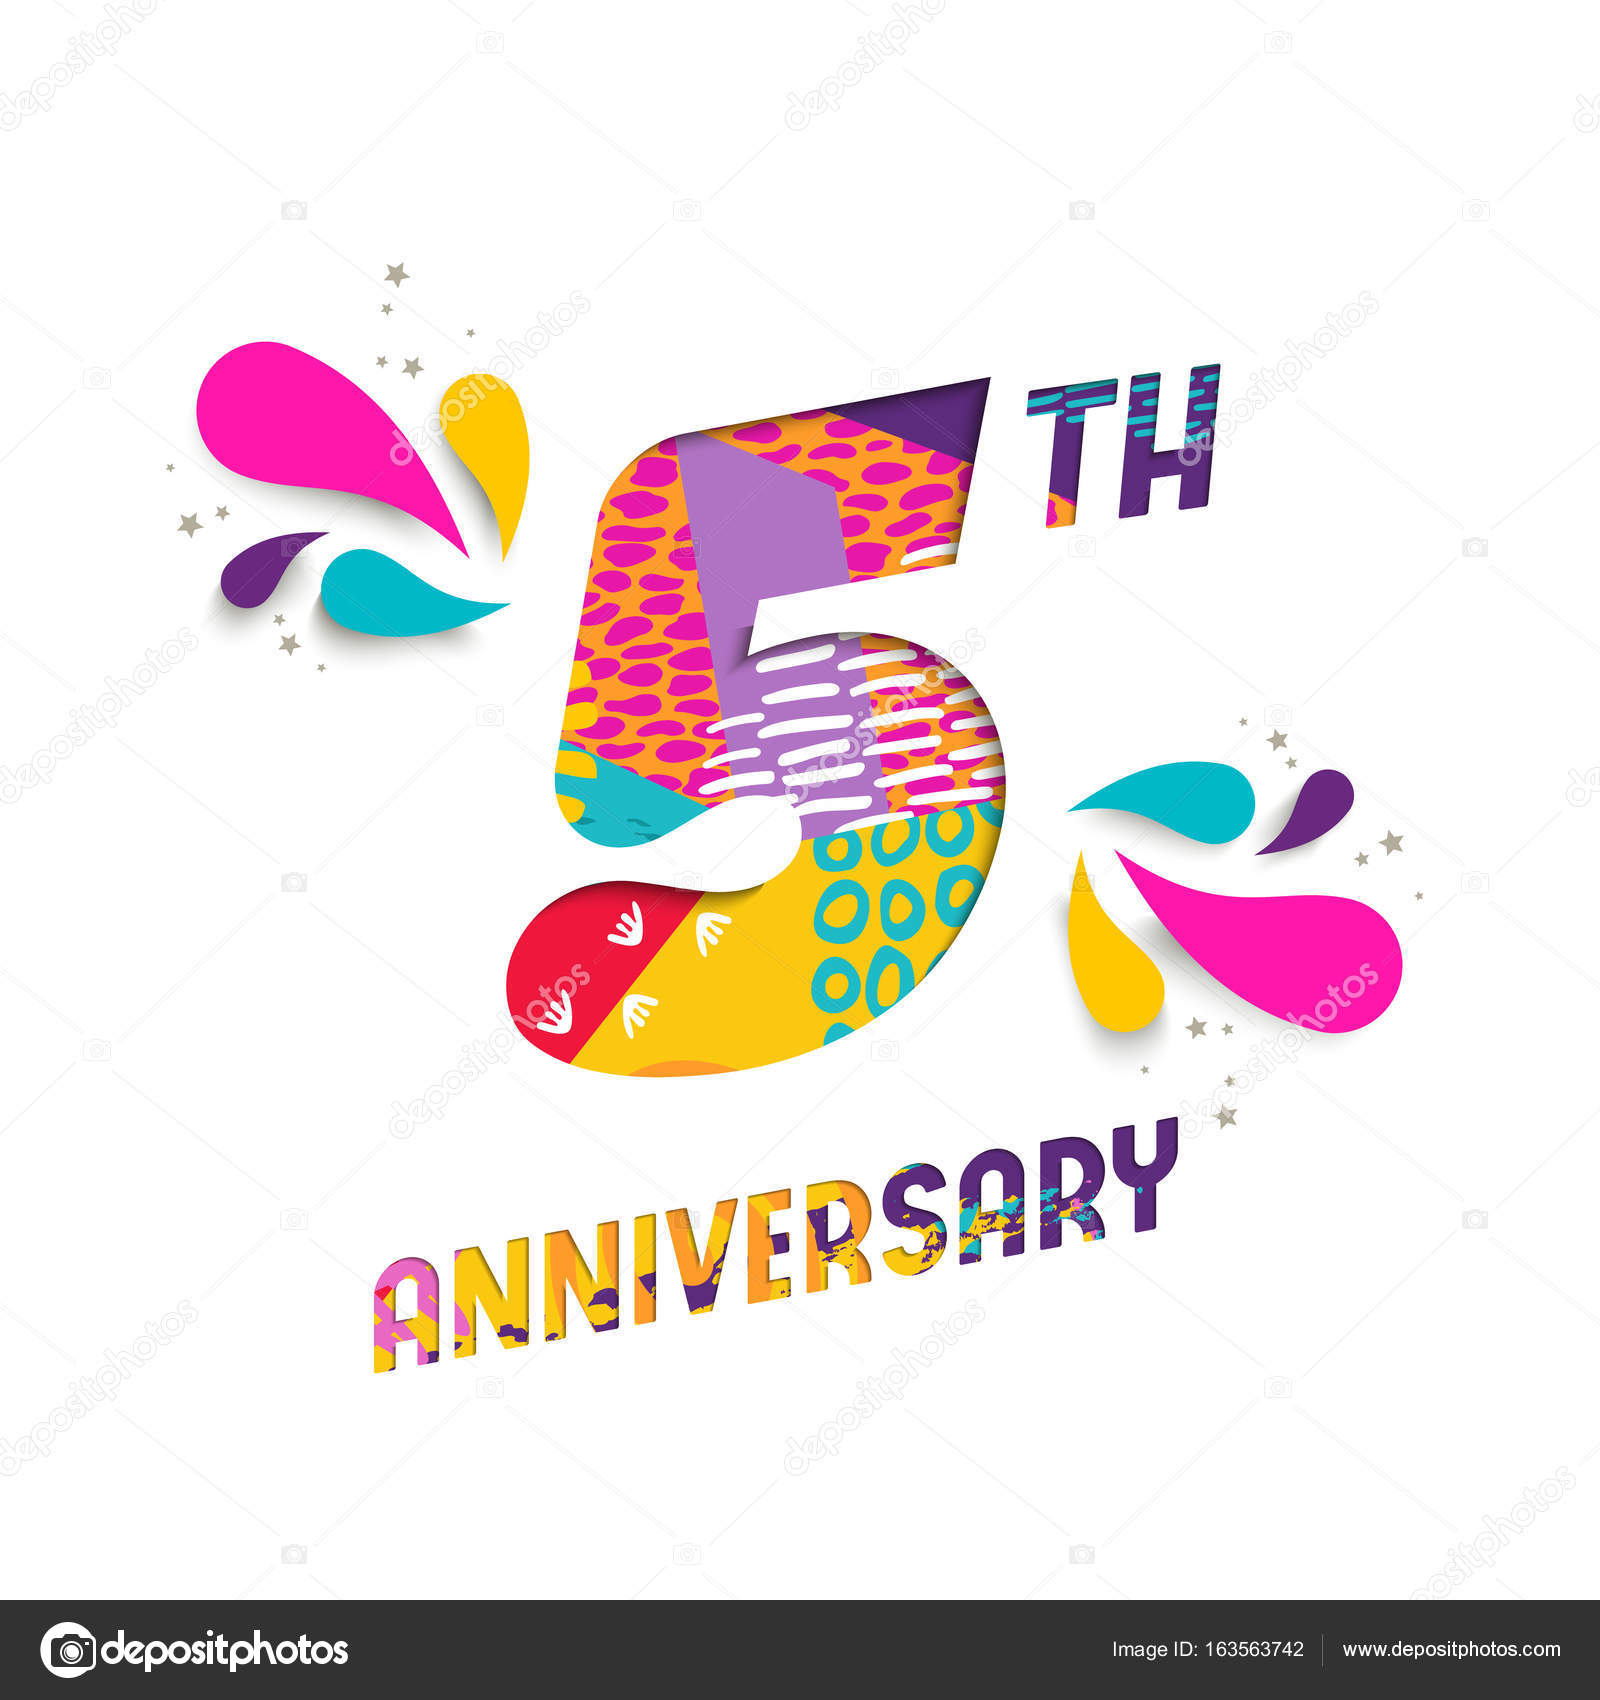 Happy 5 year anniversary paper cut greeting card stock vector happy 5 year anniversary paper cut greeting card stock vector biocorpaavc Choice Image